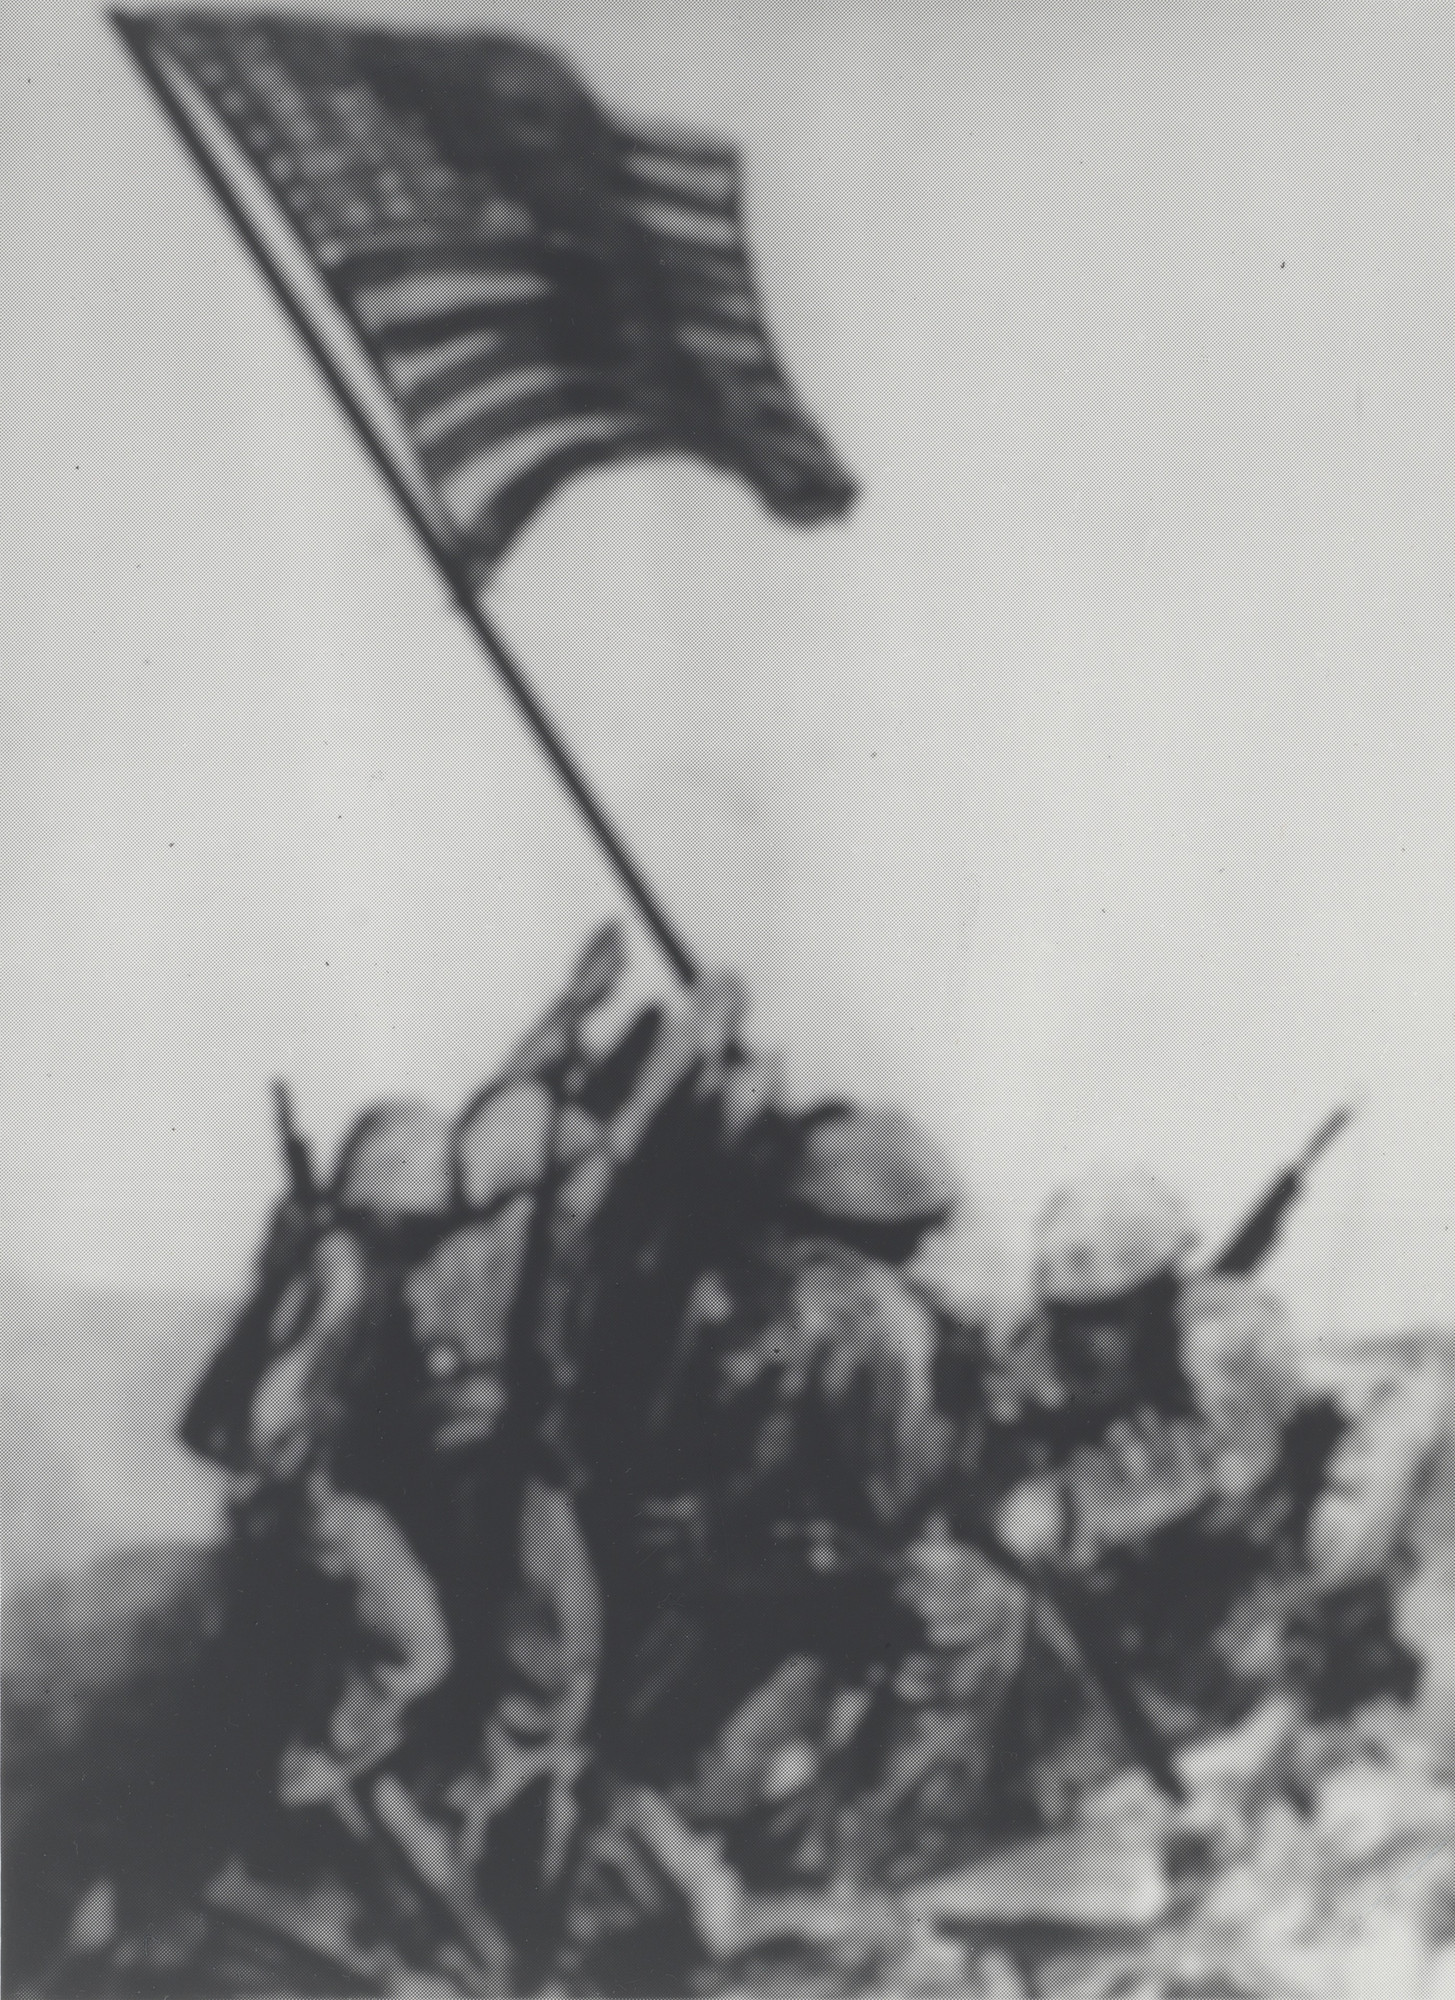 Vik Muniz. Memory Rendering of Raising the Flag on Iwo Jima. 1985-90